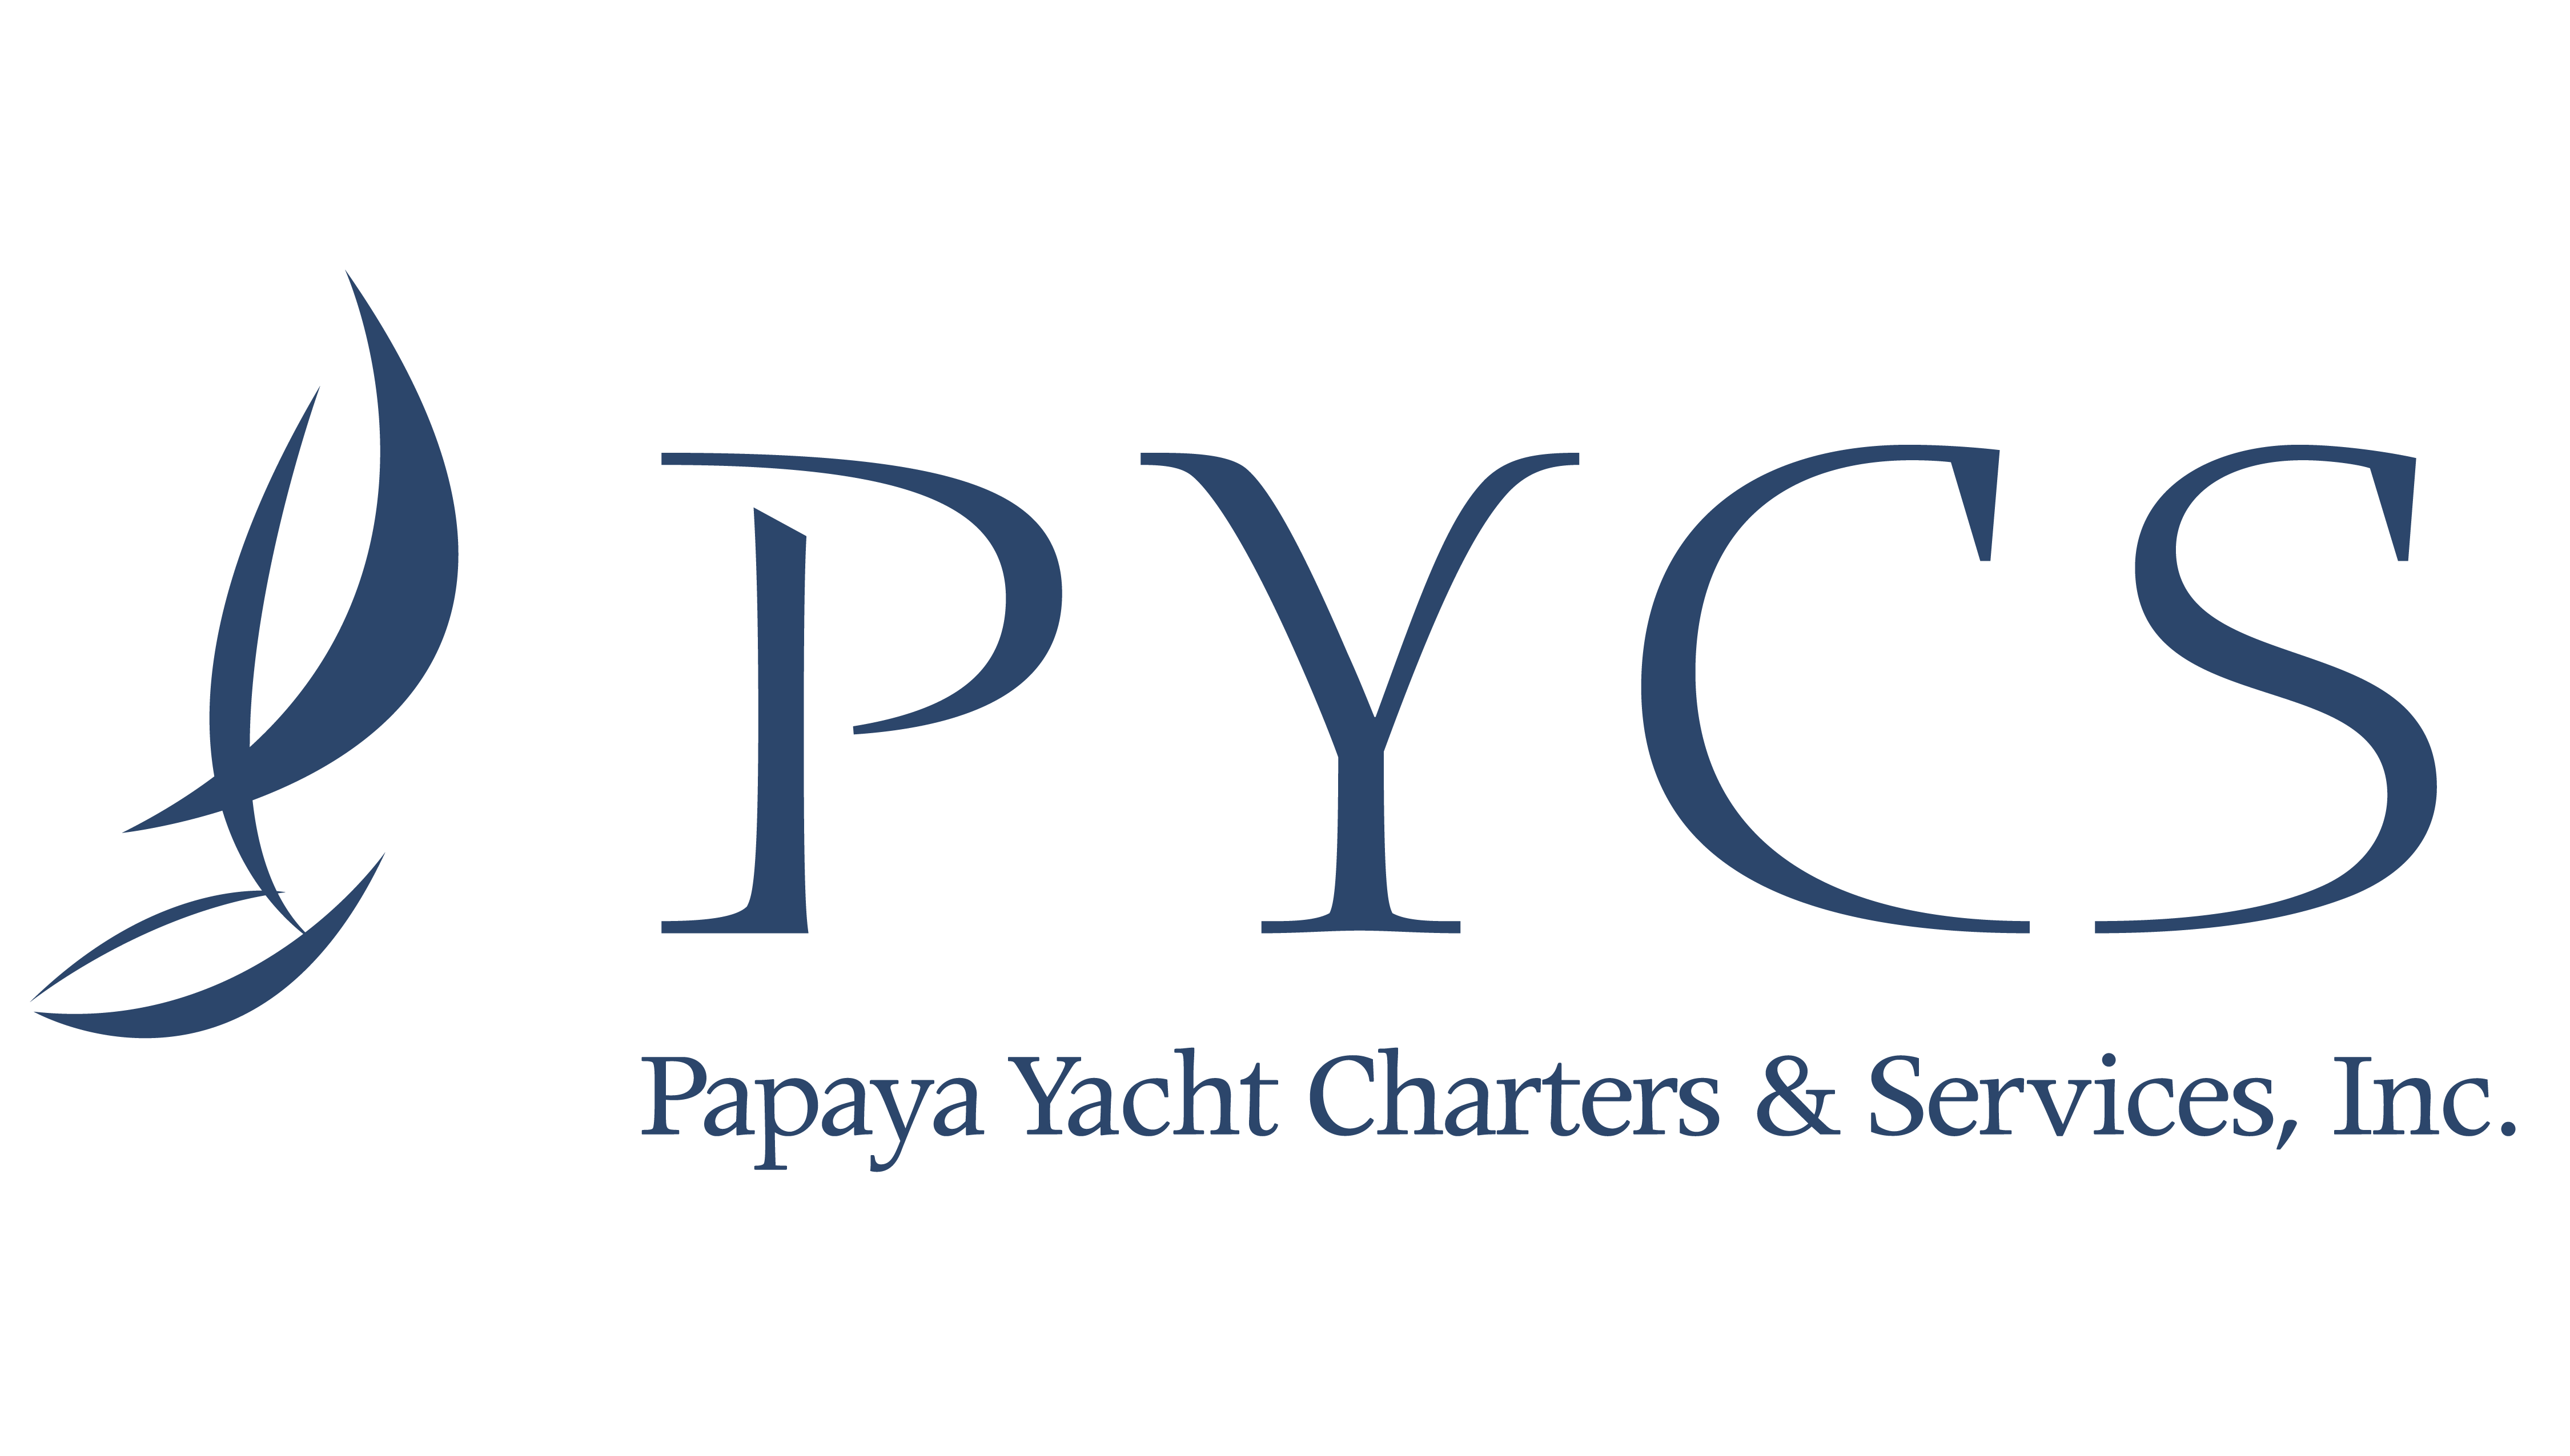 PYCSI | Papaya Yacht Charters and Services, Inc.